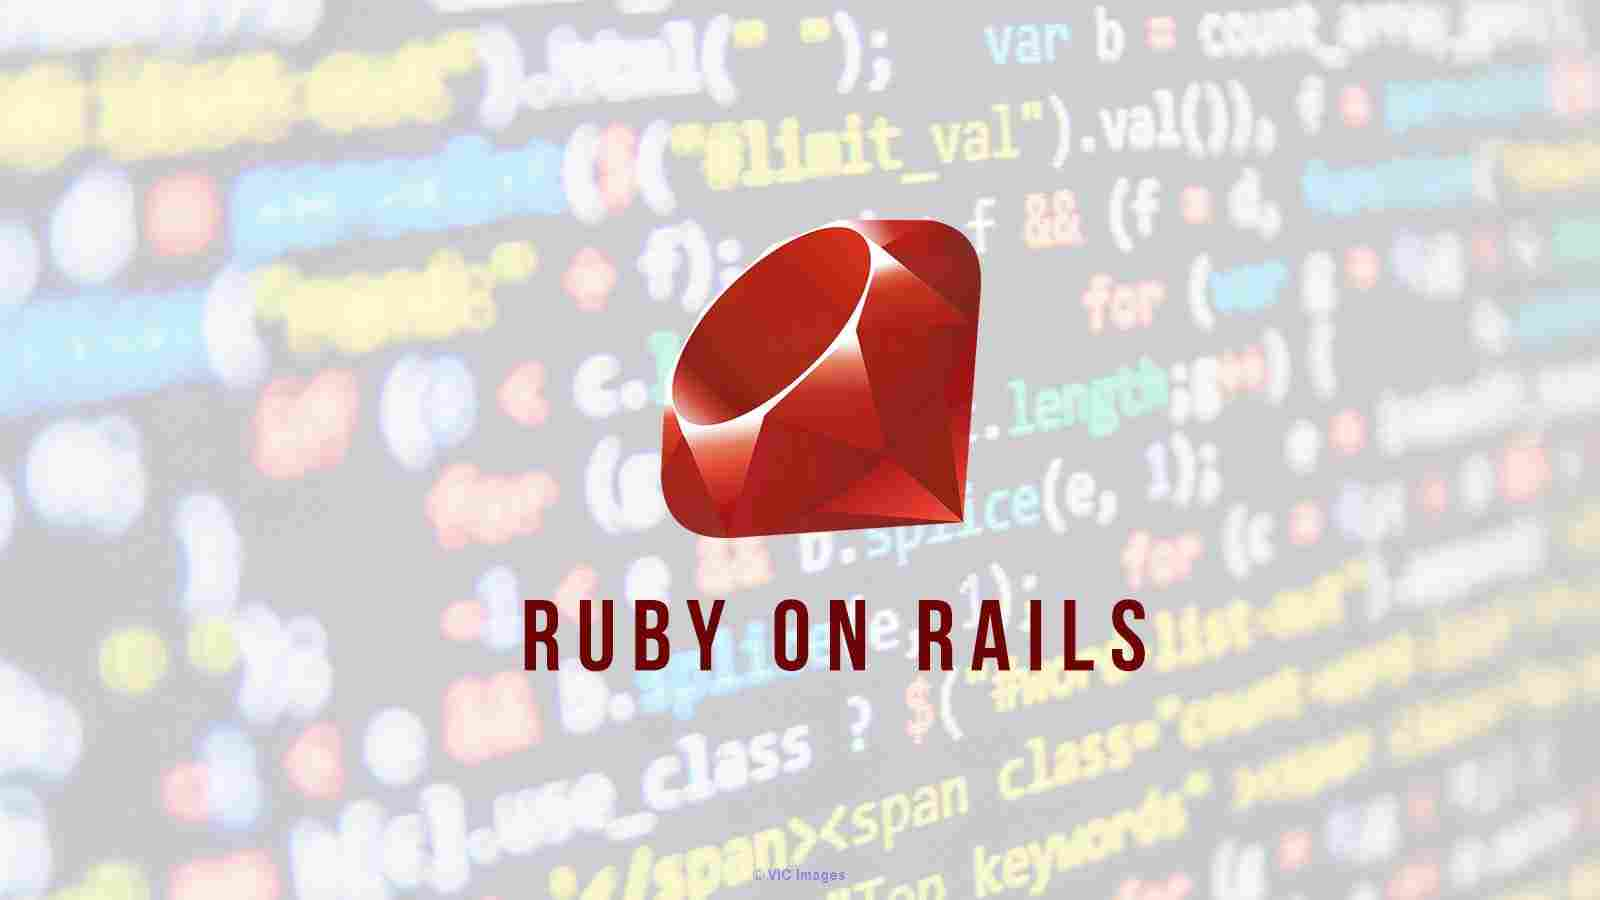 Hire remote ruby on rails developer |  ruby on rails developer at hour calgary